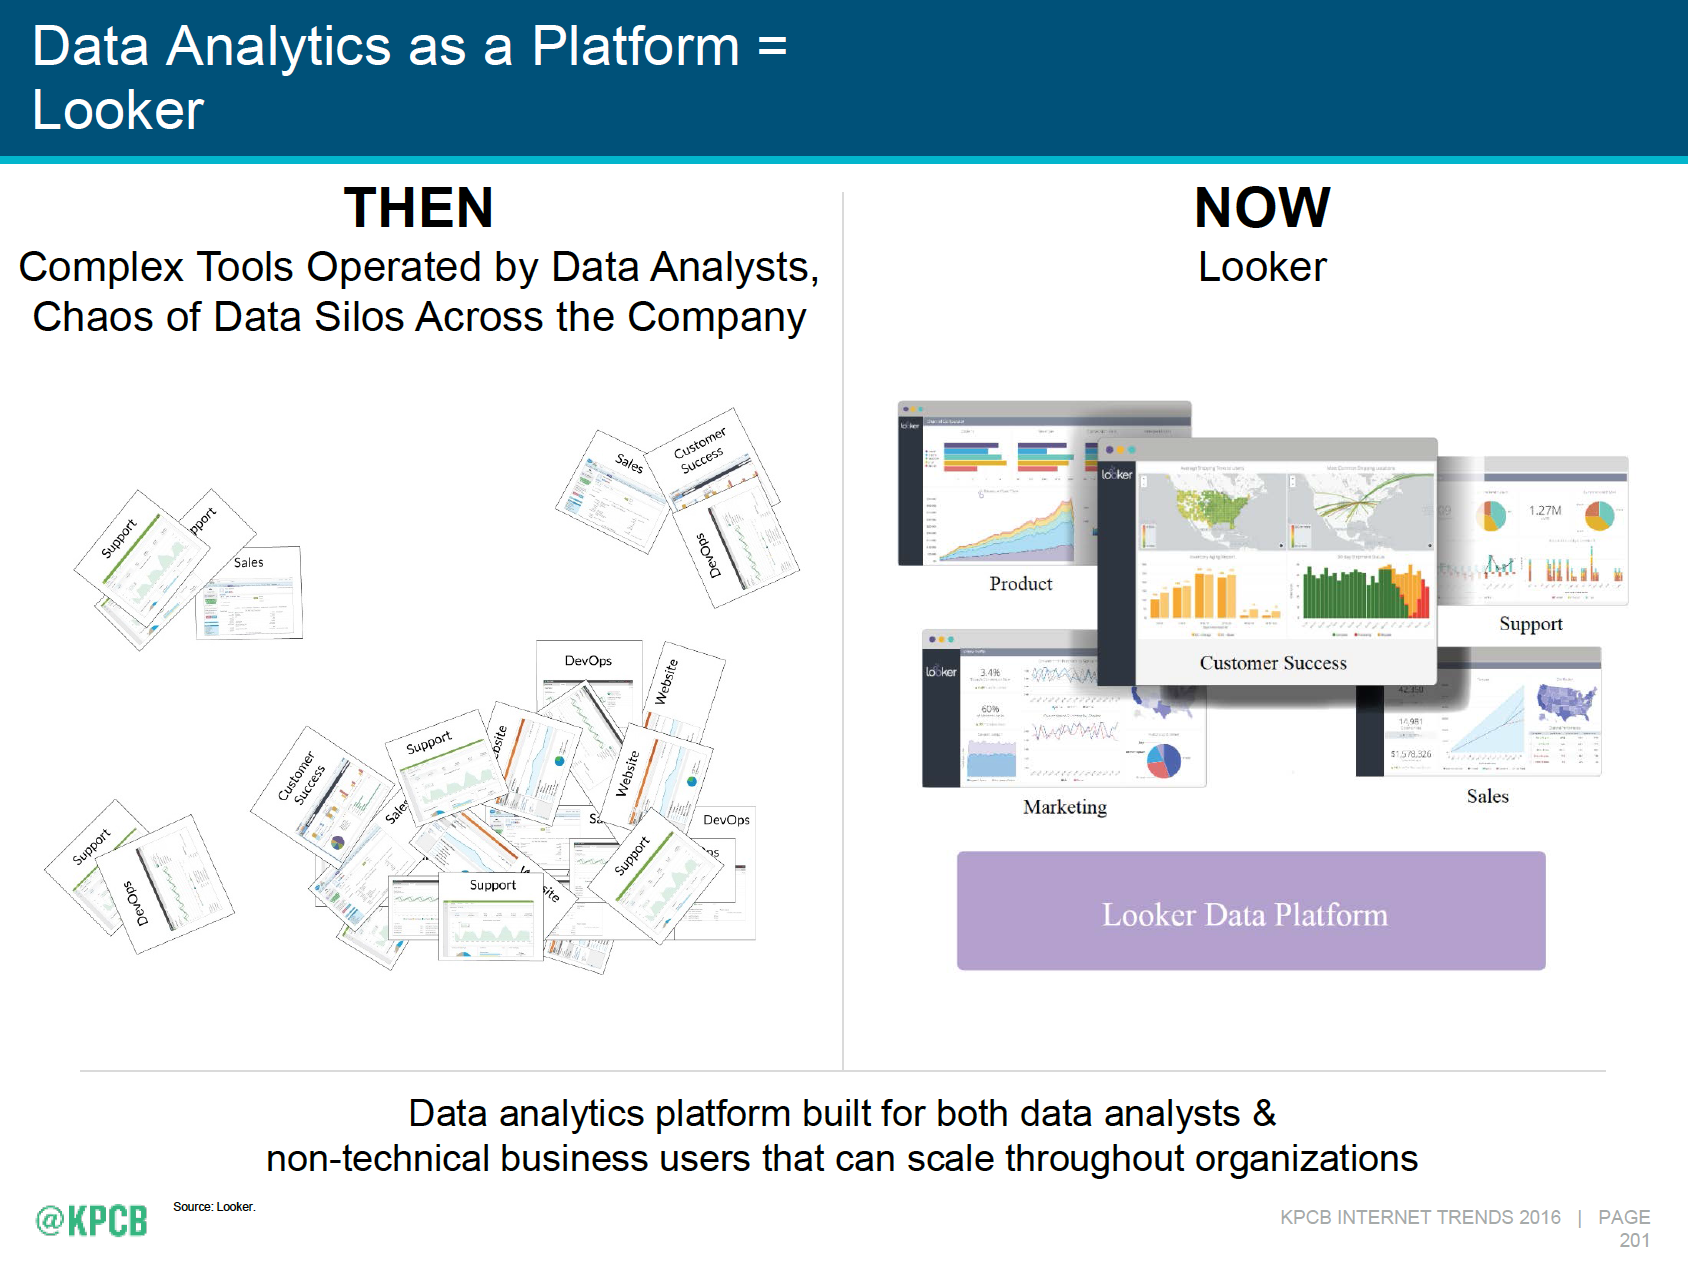 Data analytics as a platform - Mary Meeker's 2016 Internet Trends Report